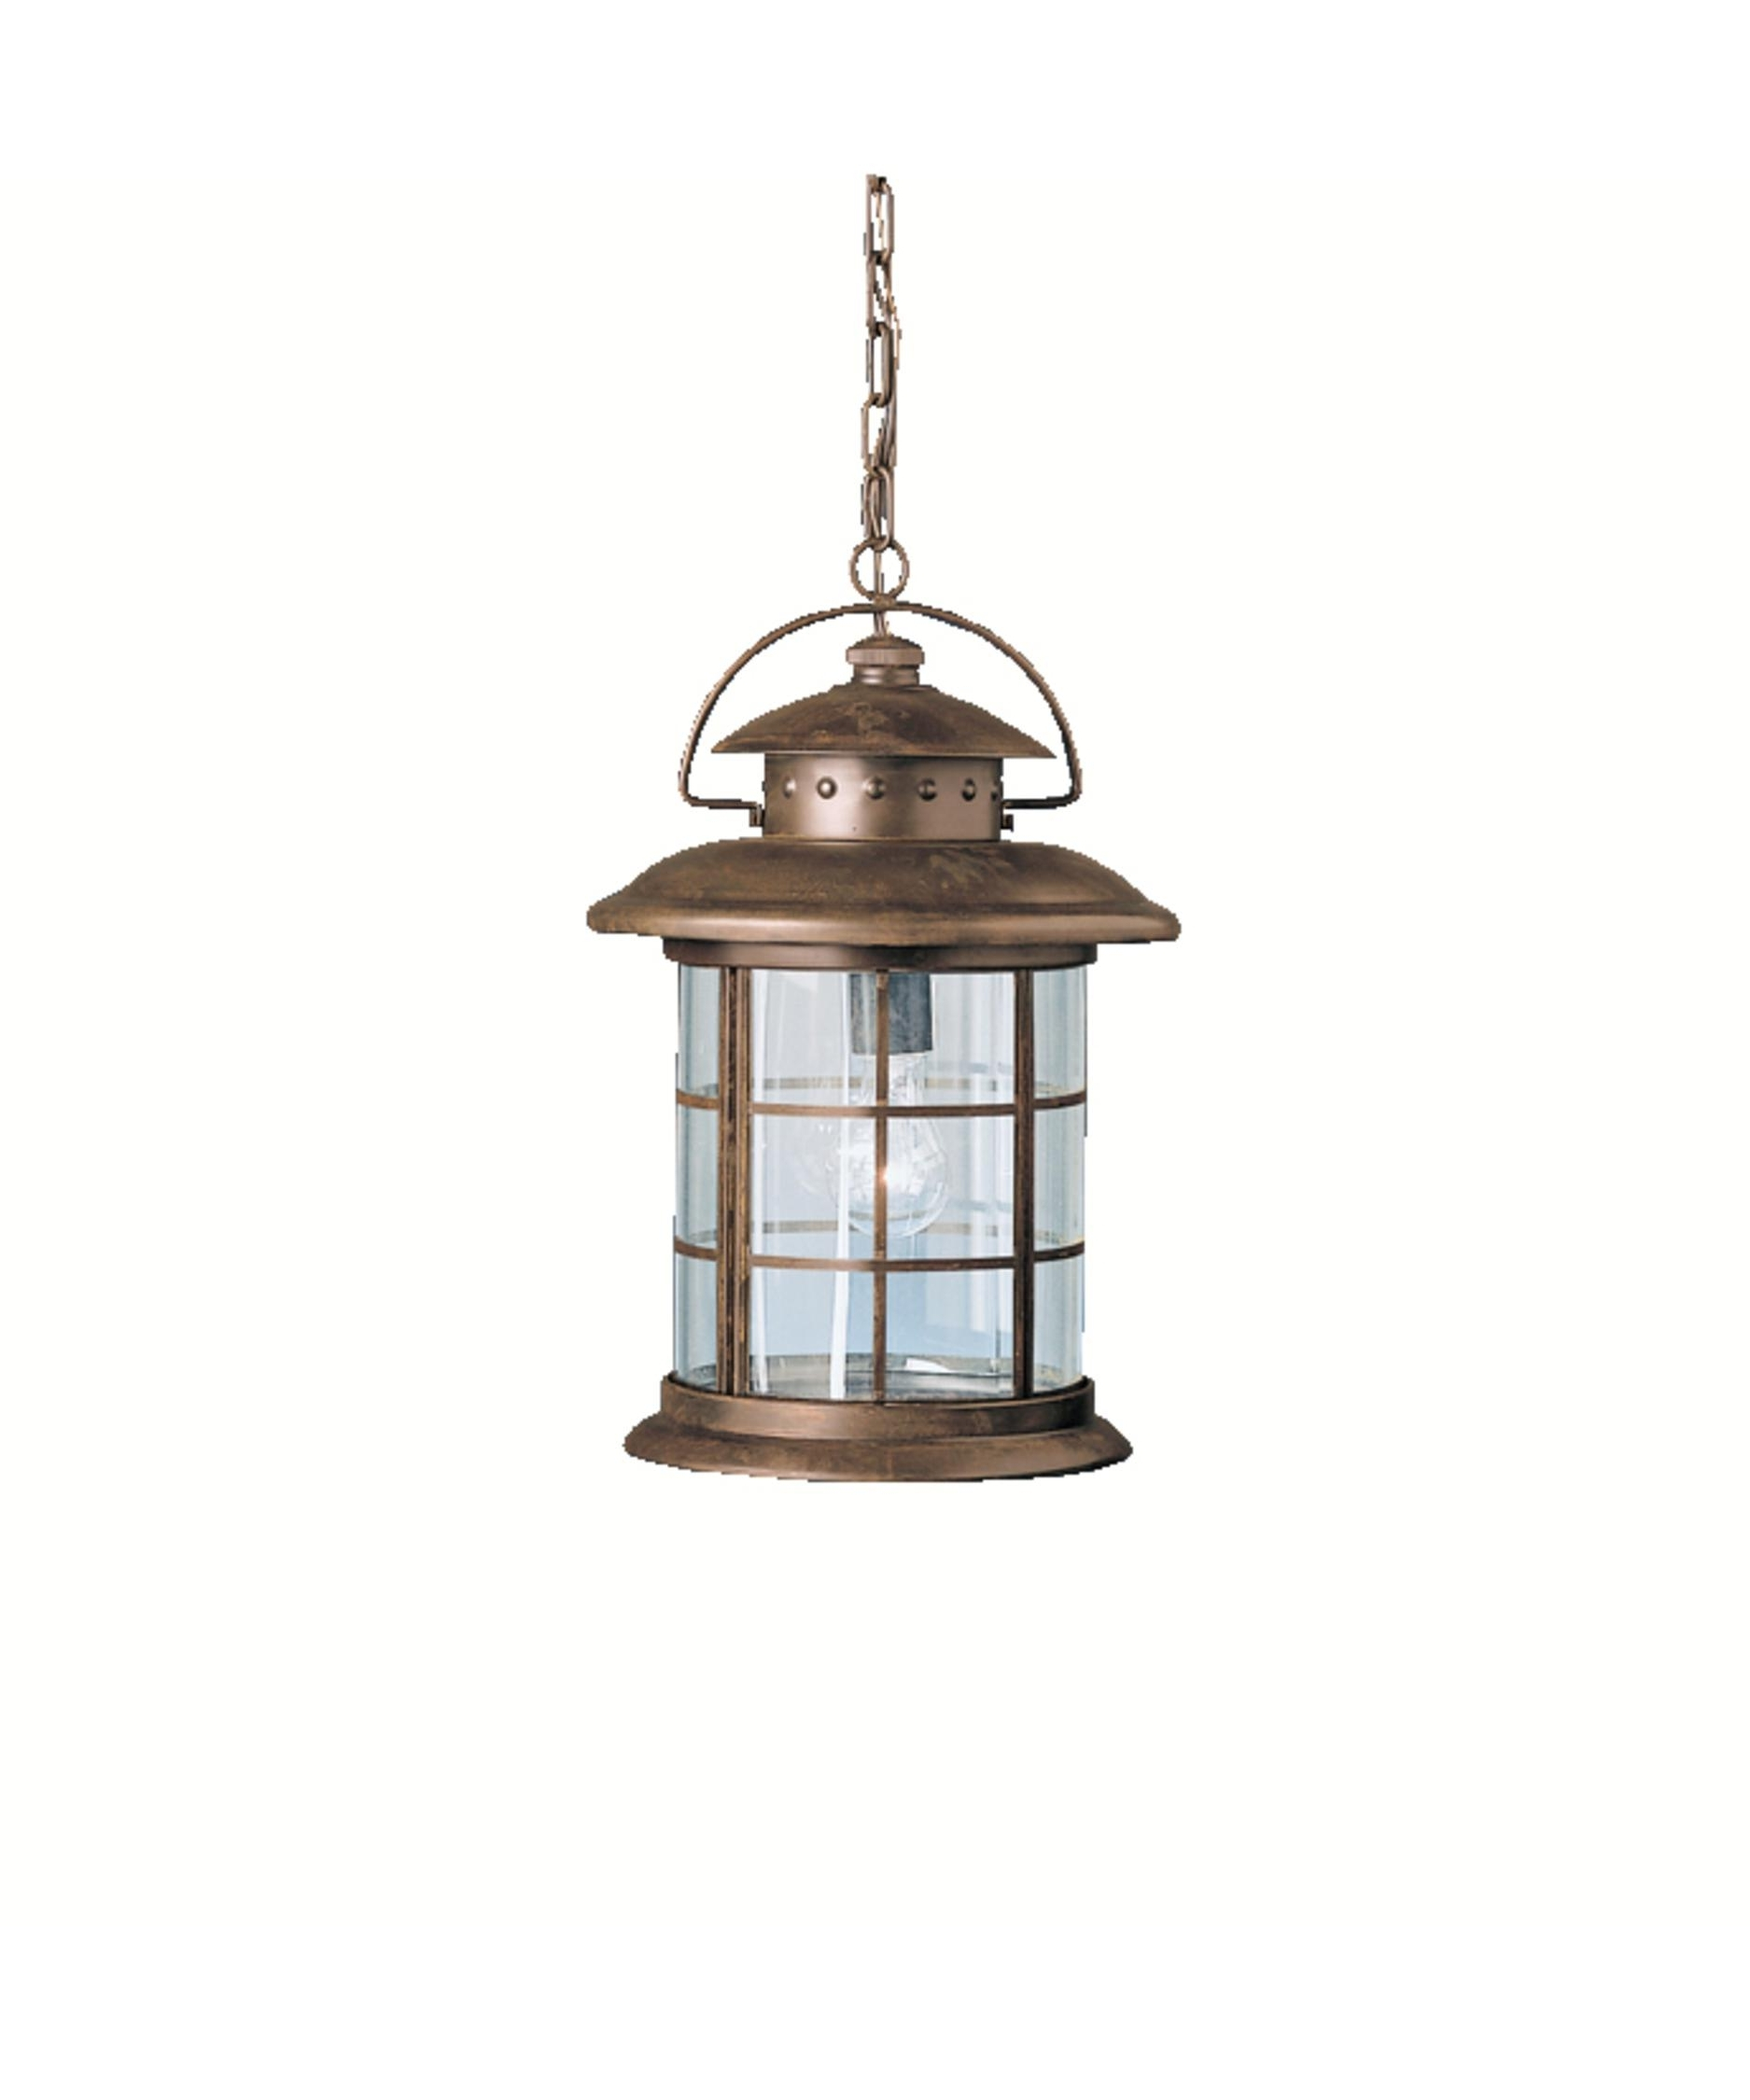 Outdoor Pendant Kichler Lighting Inside Well Liked Kichler 9870 Rustic 11 Inch Wide 1 Light Outdoor Hanging Lantern (View 11 of 20)